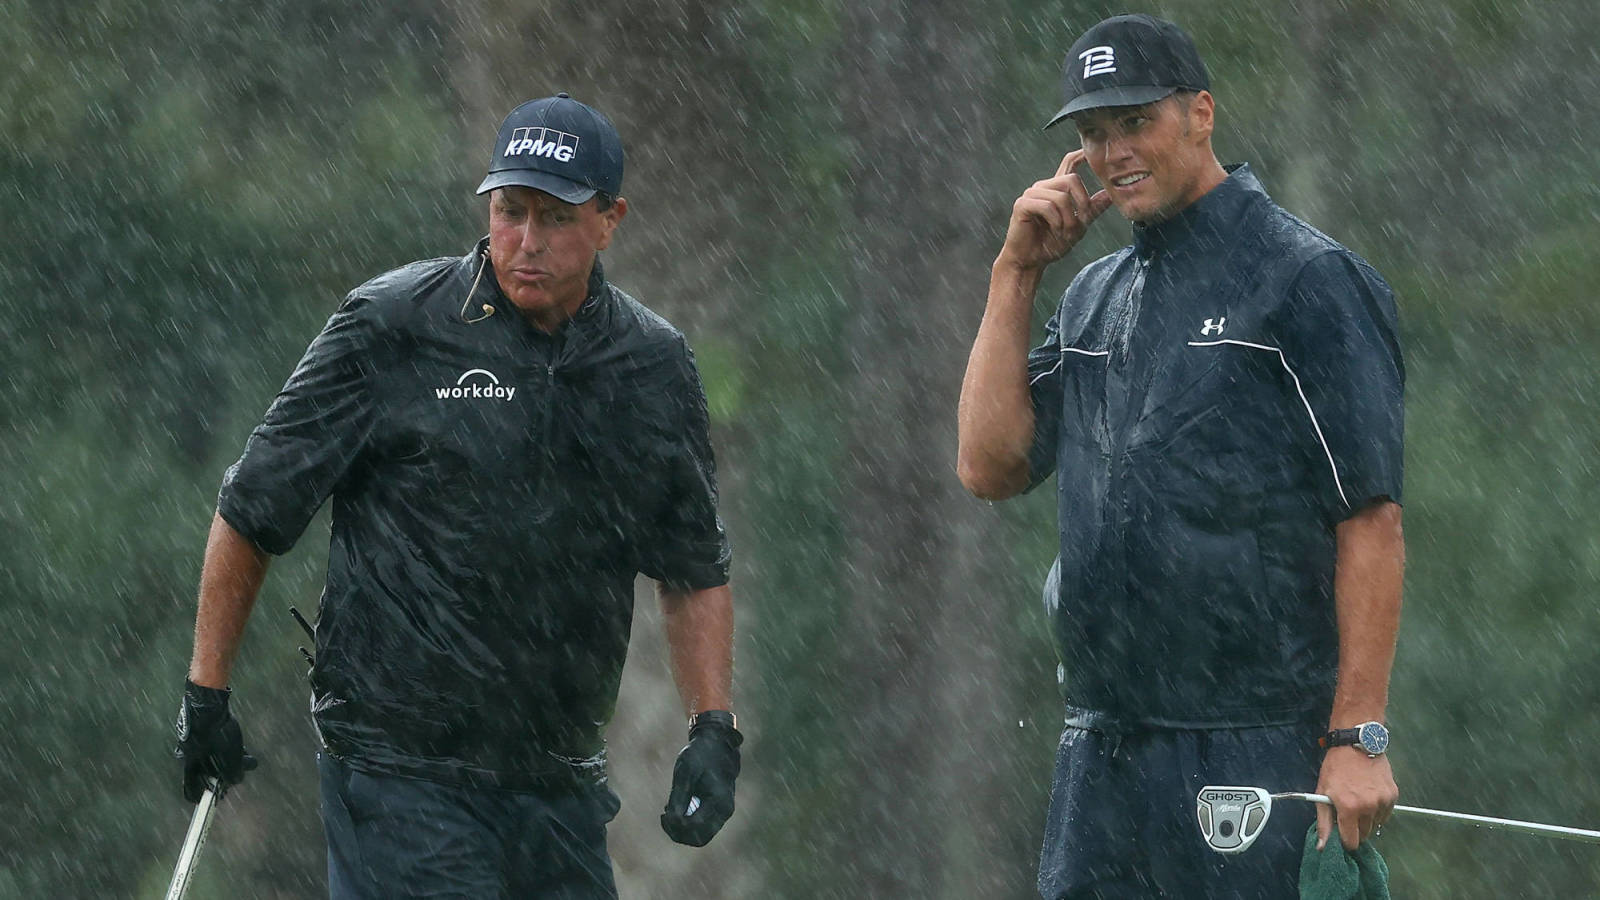 Tom Brady shares a hilarious message he got from Phil Mickelson